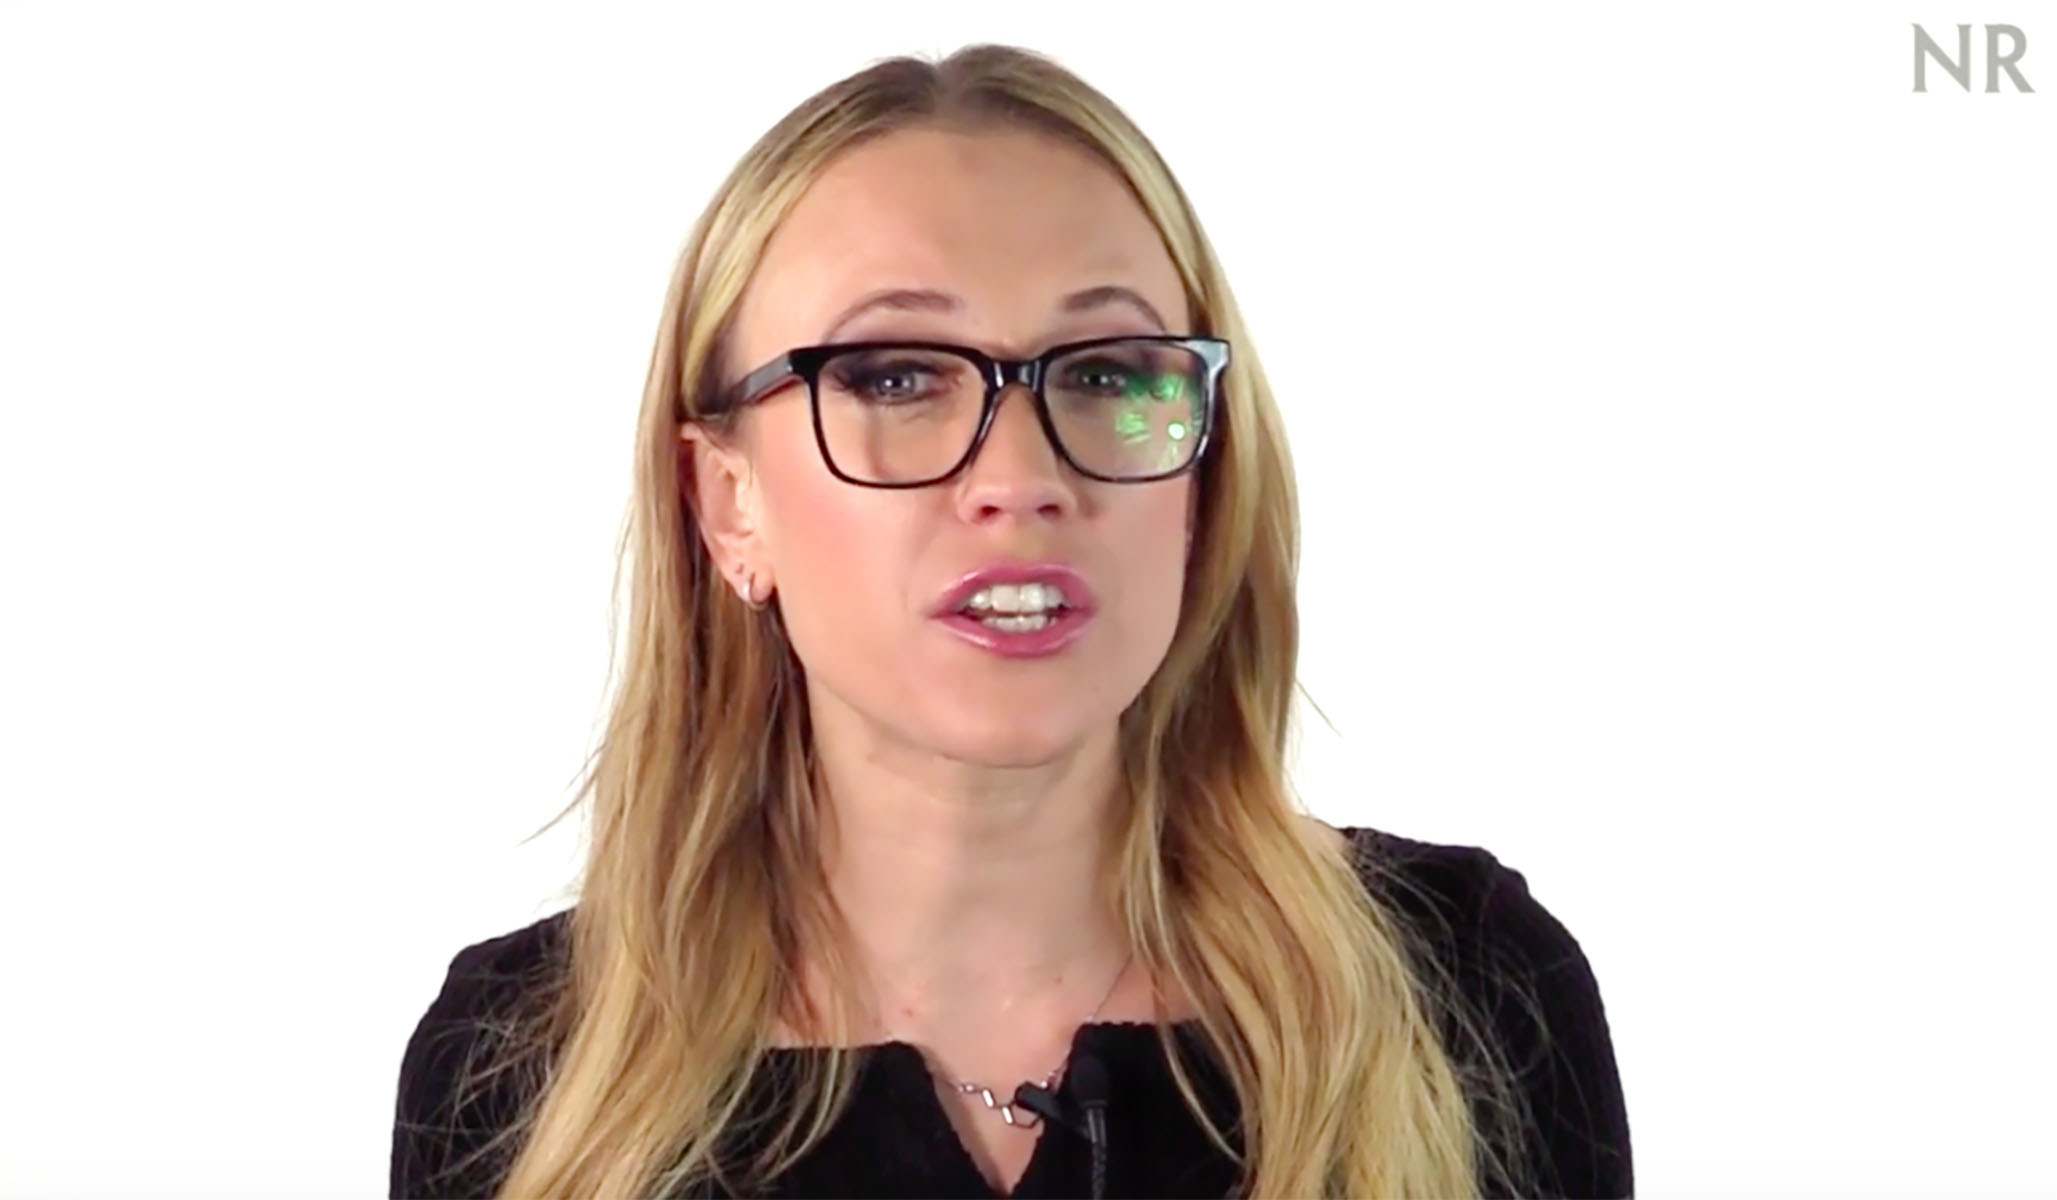 Watch: Kat Timpf Urges That the U.S. Should Follow Oklahoma's Lead on Inmate Releases